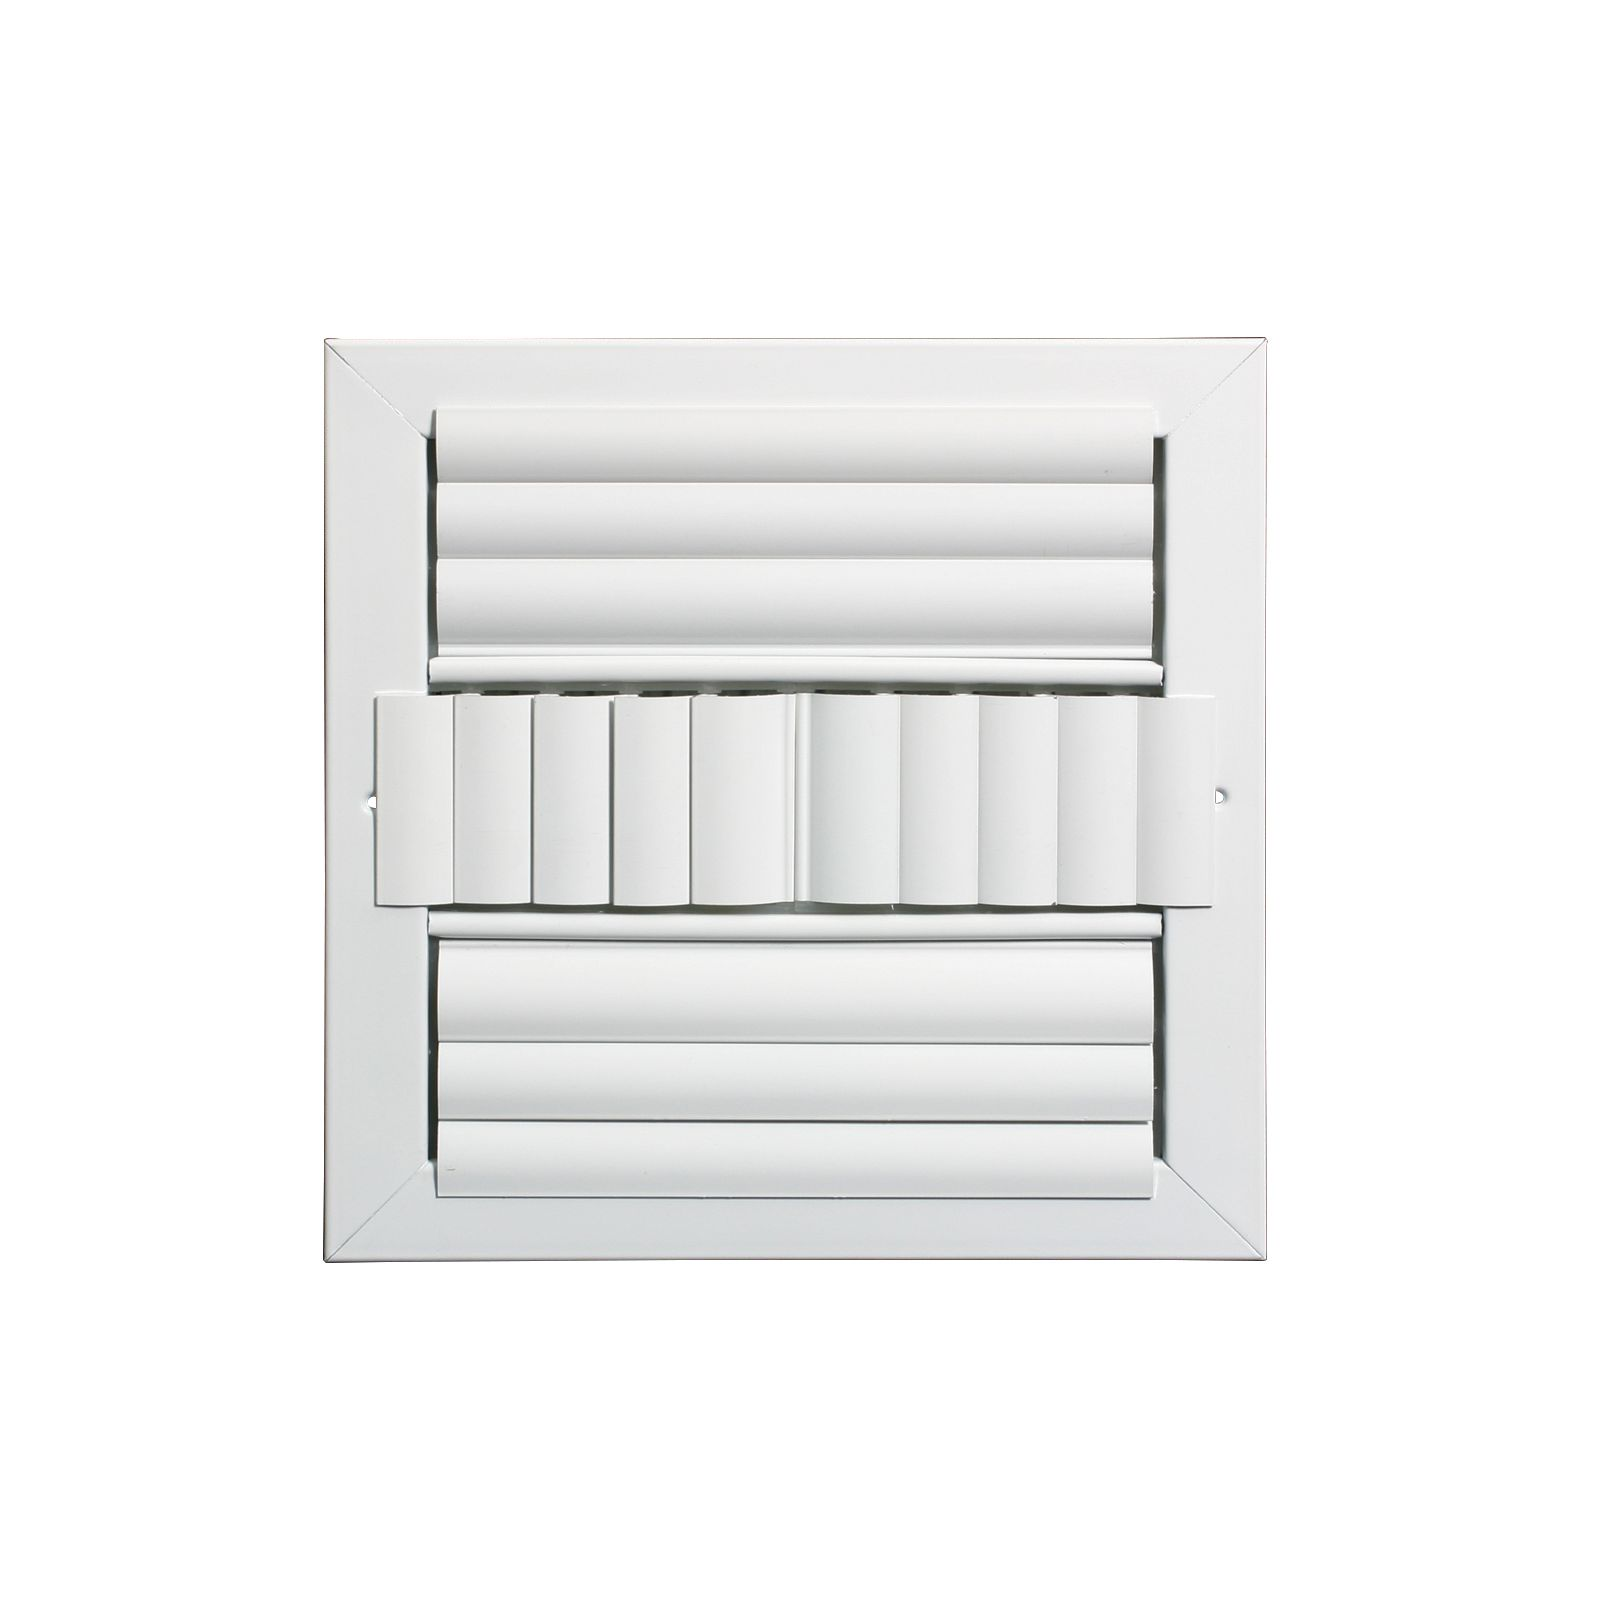 "Grille Tech CL4M1212 - Aluminum Ceiling 4Way Deflection Supply, Multi-shutter 12"" X 12"" White"